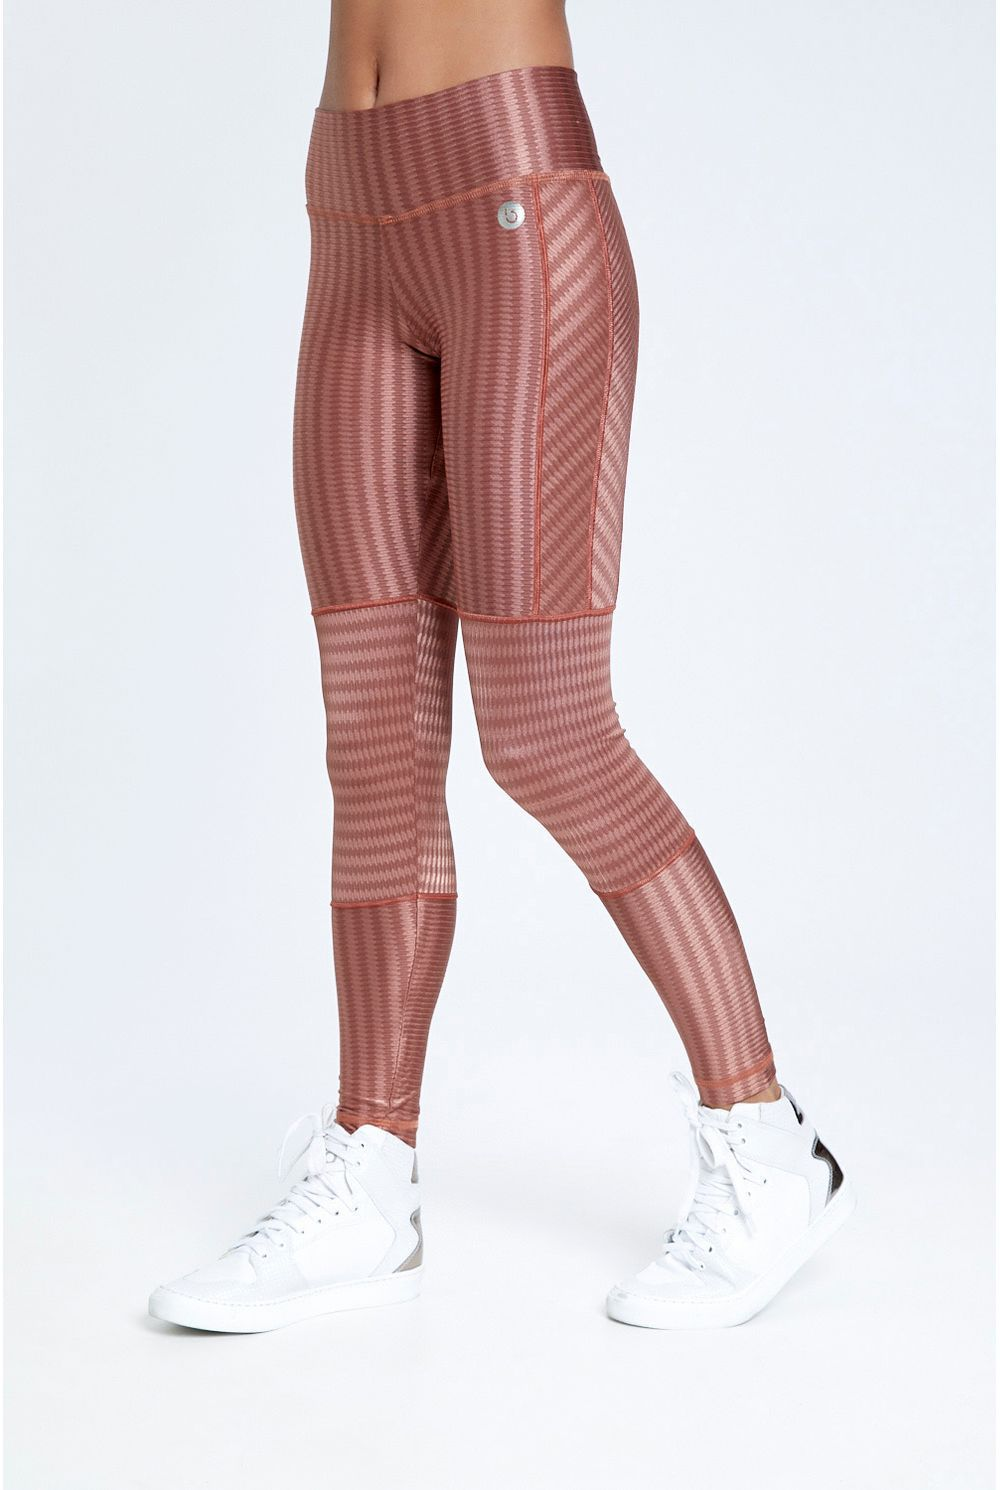 LEGGING OREGON - BRONZE